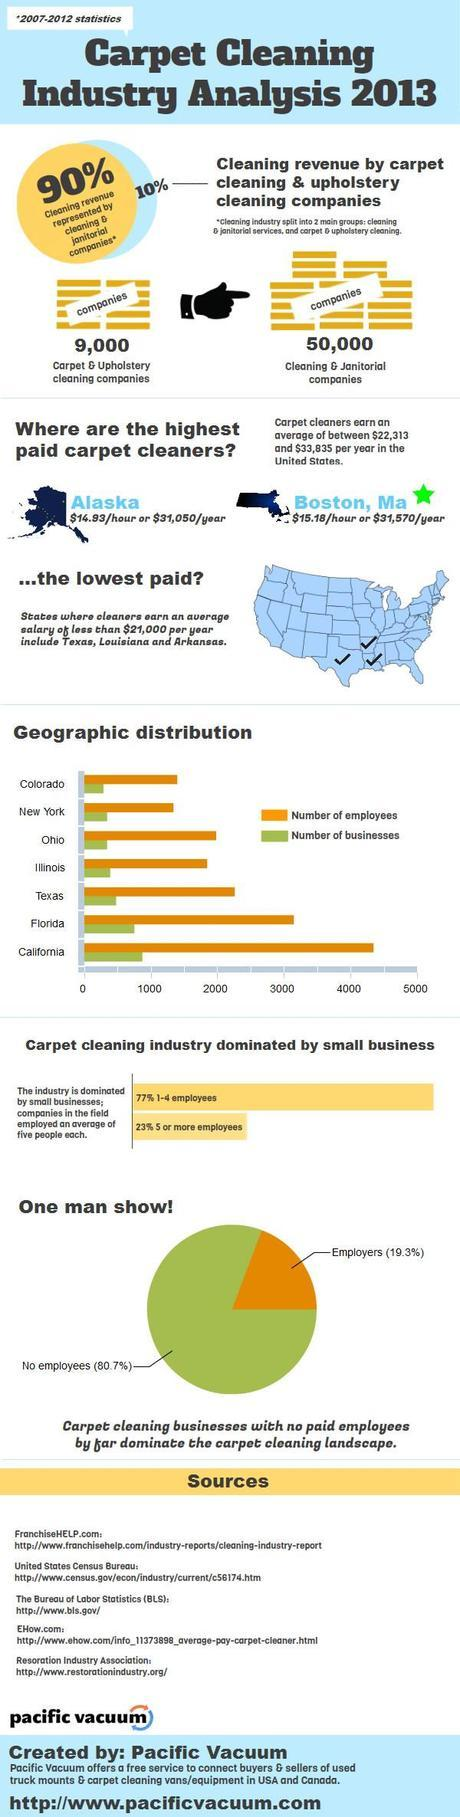 Carpet Cleaning Industry Analysis Infographic